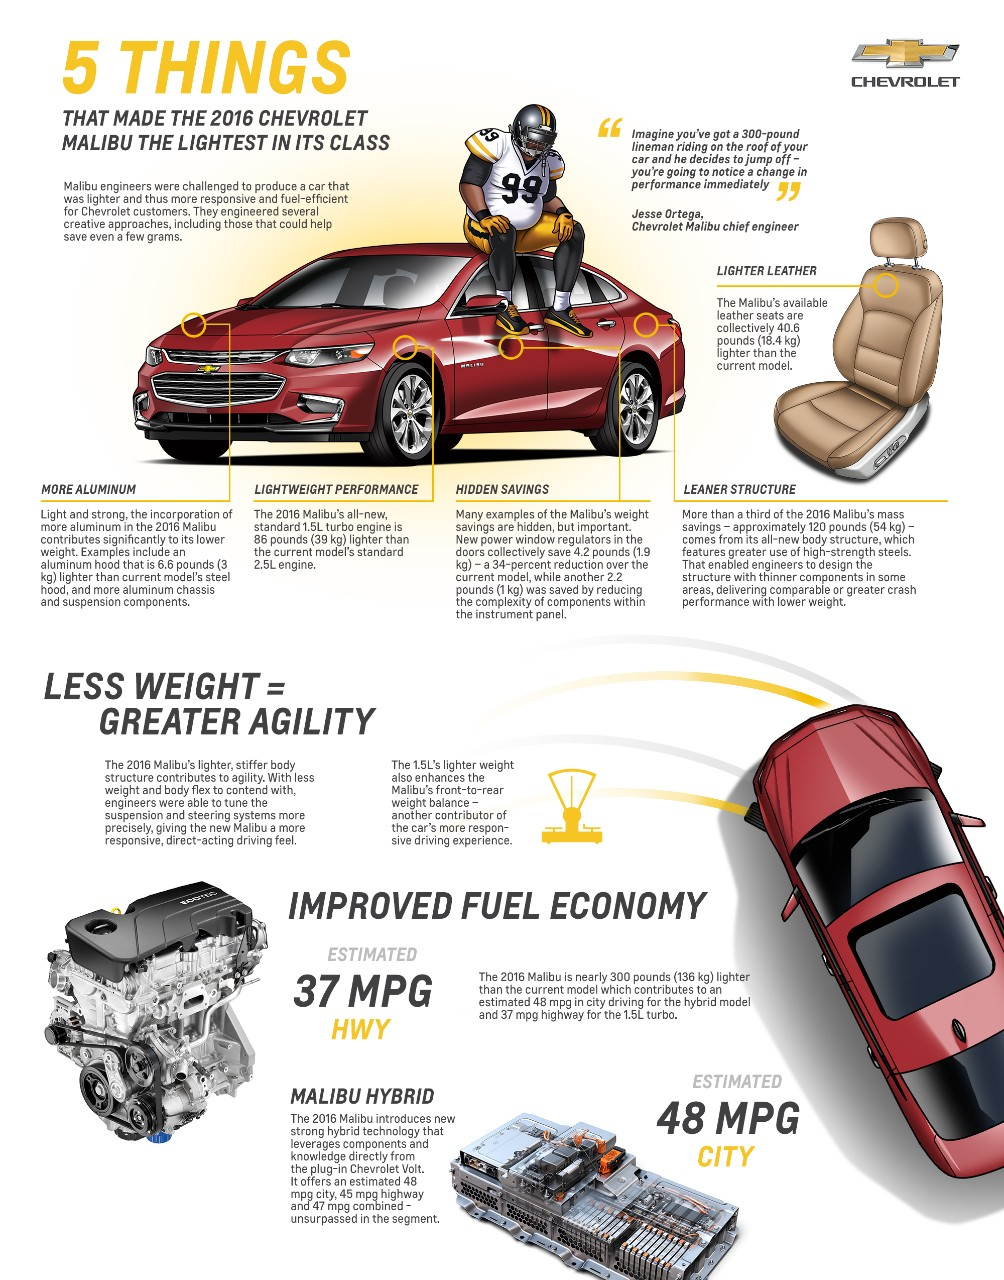 2016 Chevy Malibu weight infographic